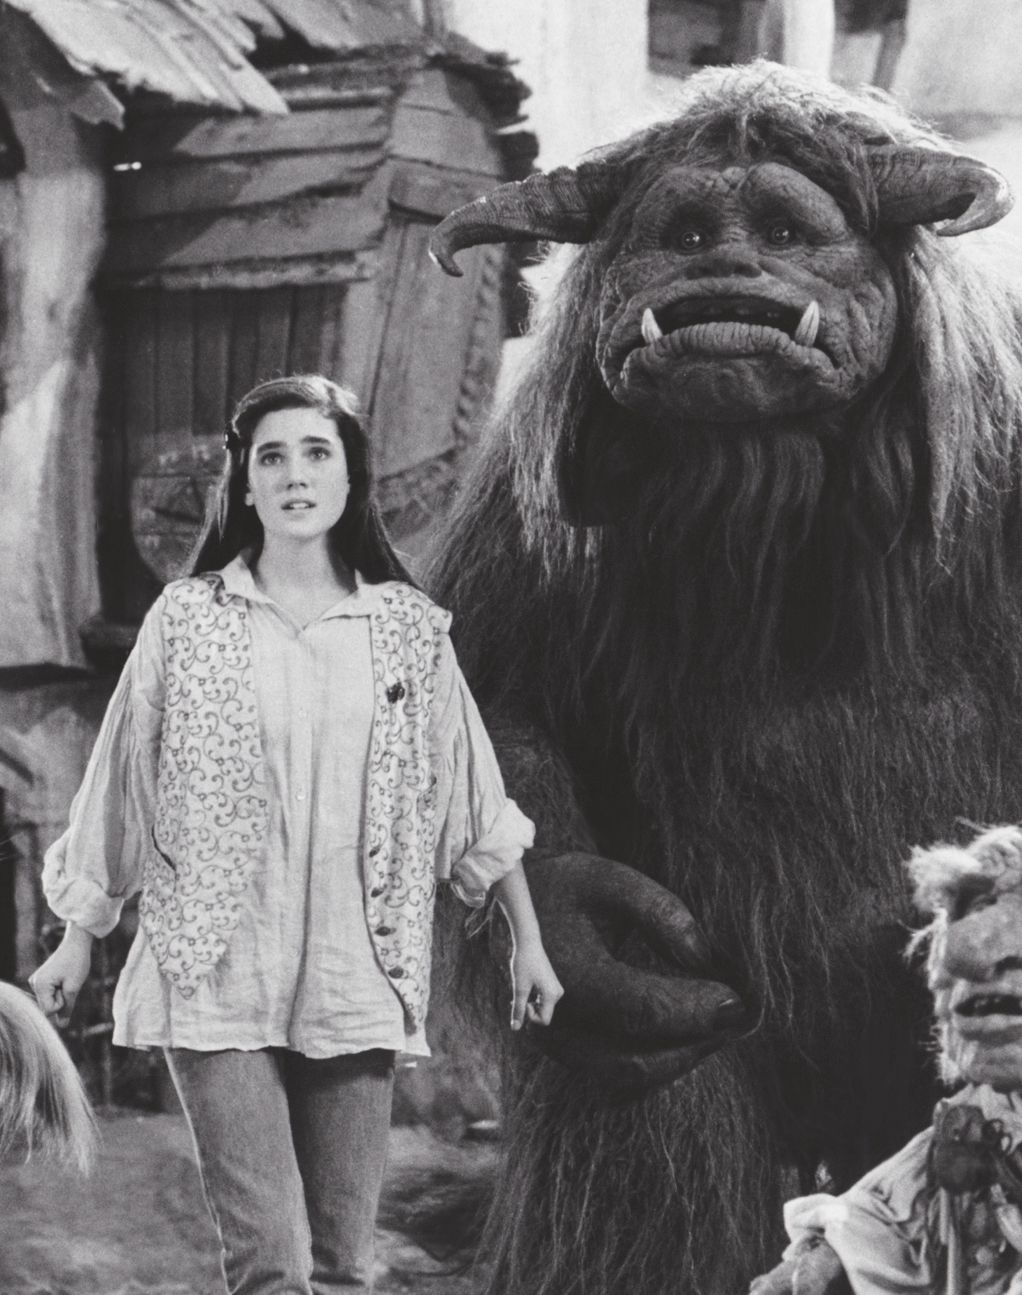 1986 - Jennifer Connelly as Sarah and Ludo in Labyrinth ... Labyrinth 1986 Ludo